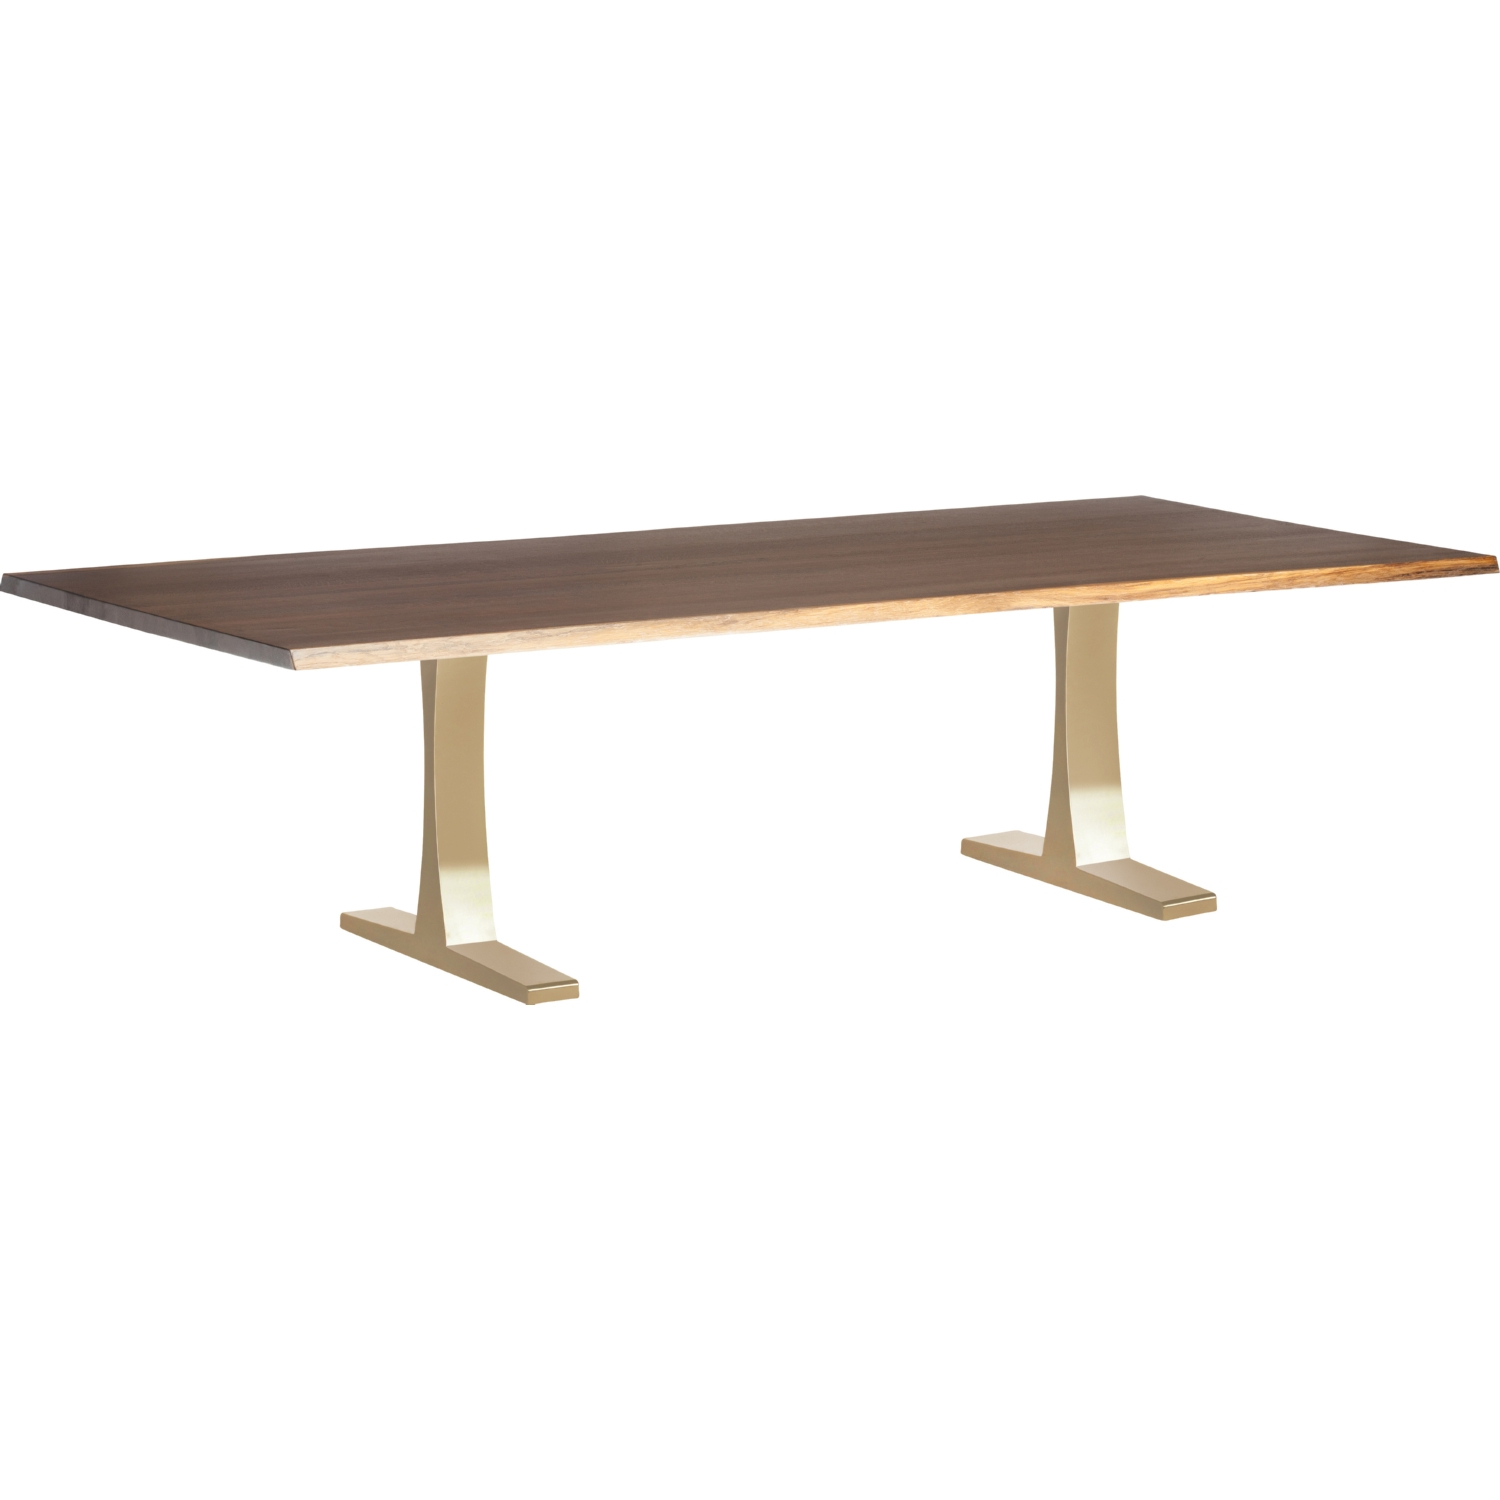 """Popular Dining Tables In Seared Oak With Brass Detail Pertaining To Nuevo Toulouse 112"""" Dining Table Seared Oak Top On (View 8 of 25)"""